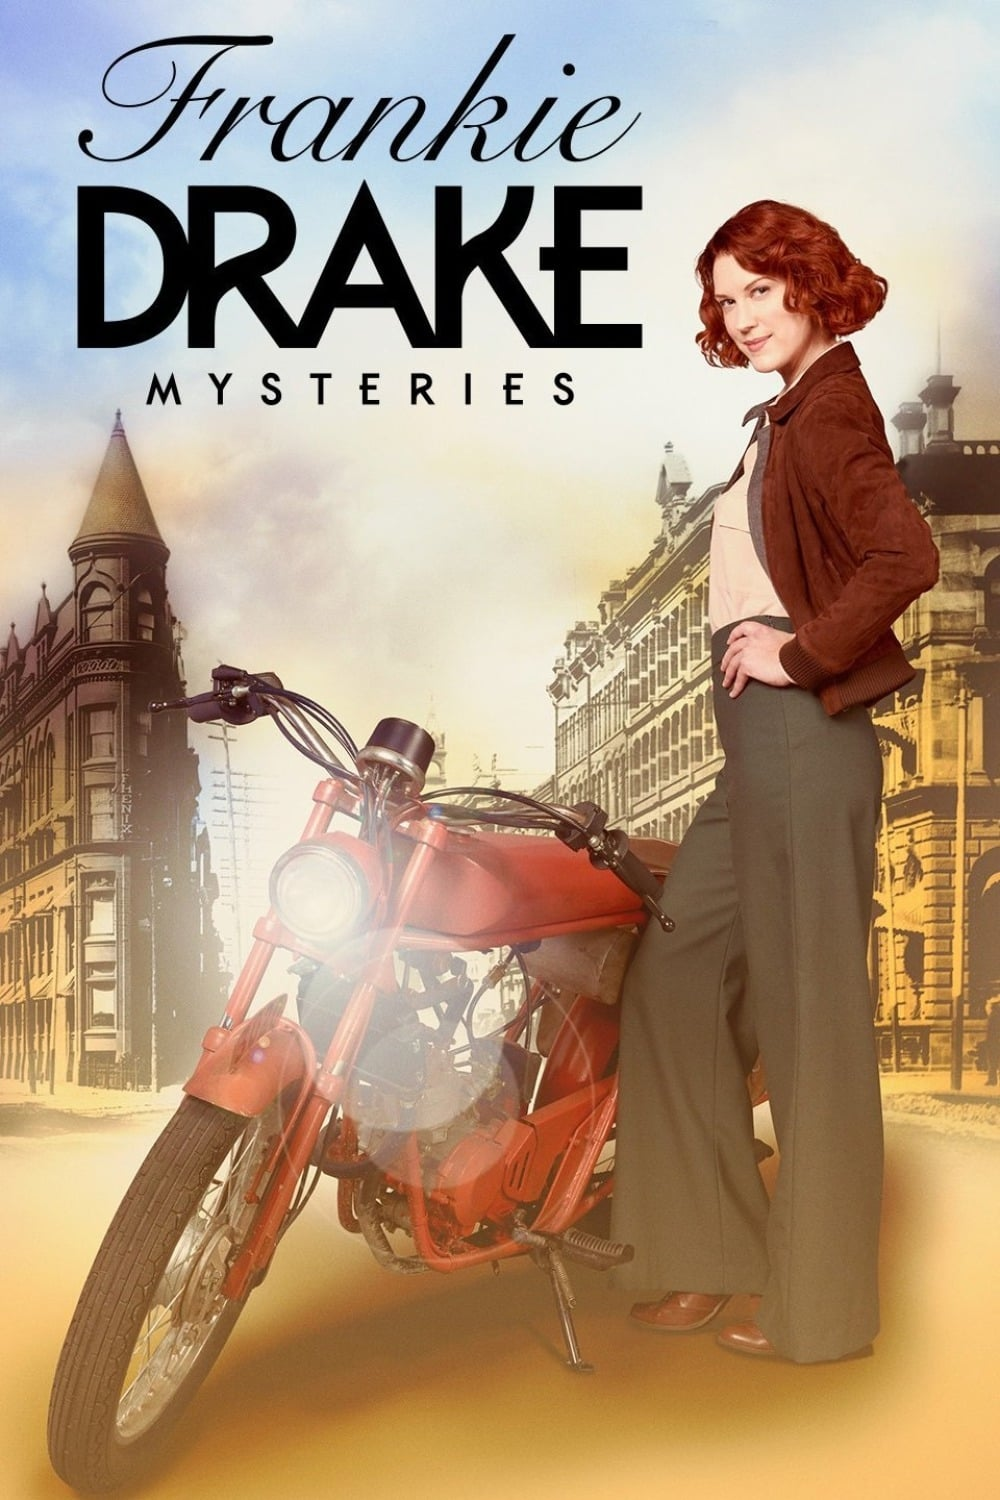 Frankie Drake Mysteries – Todas as Temporadas Dublado / Legendado (2017)